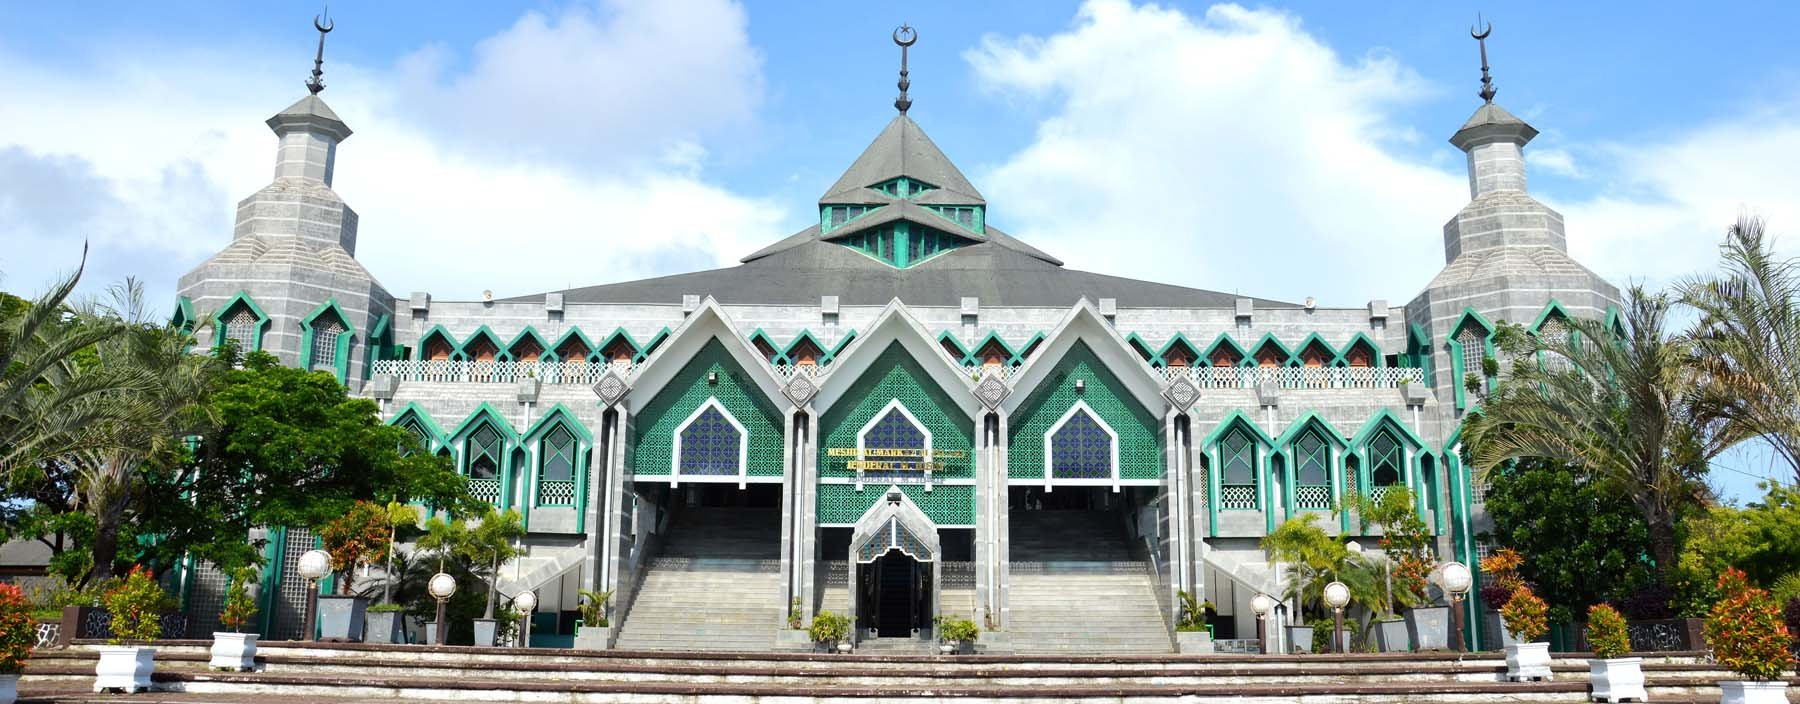 id, celebes, general m yusuf mosque at makassar.jpg